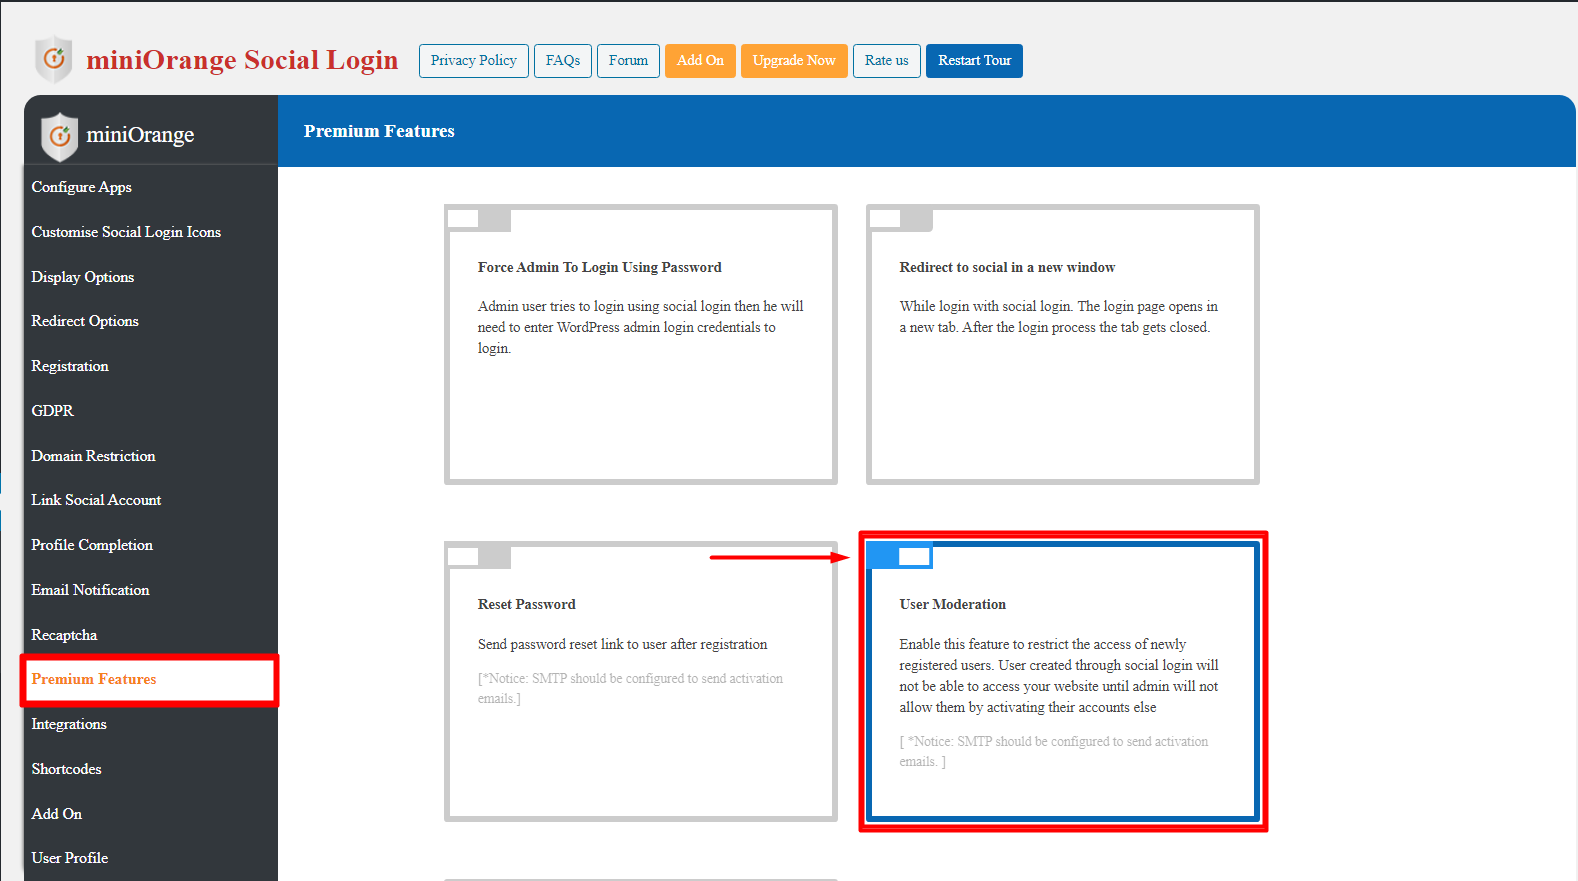 Enable User Moderation in social login